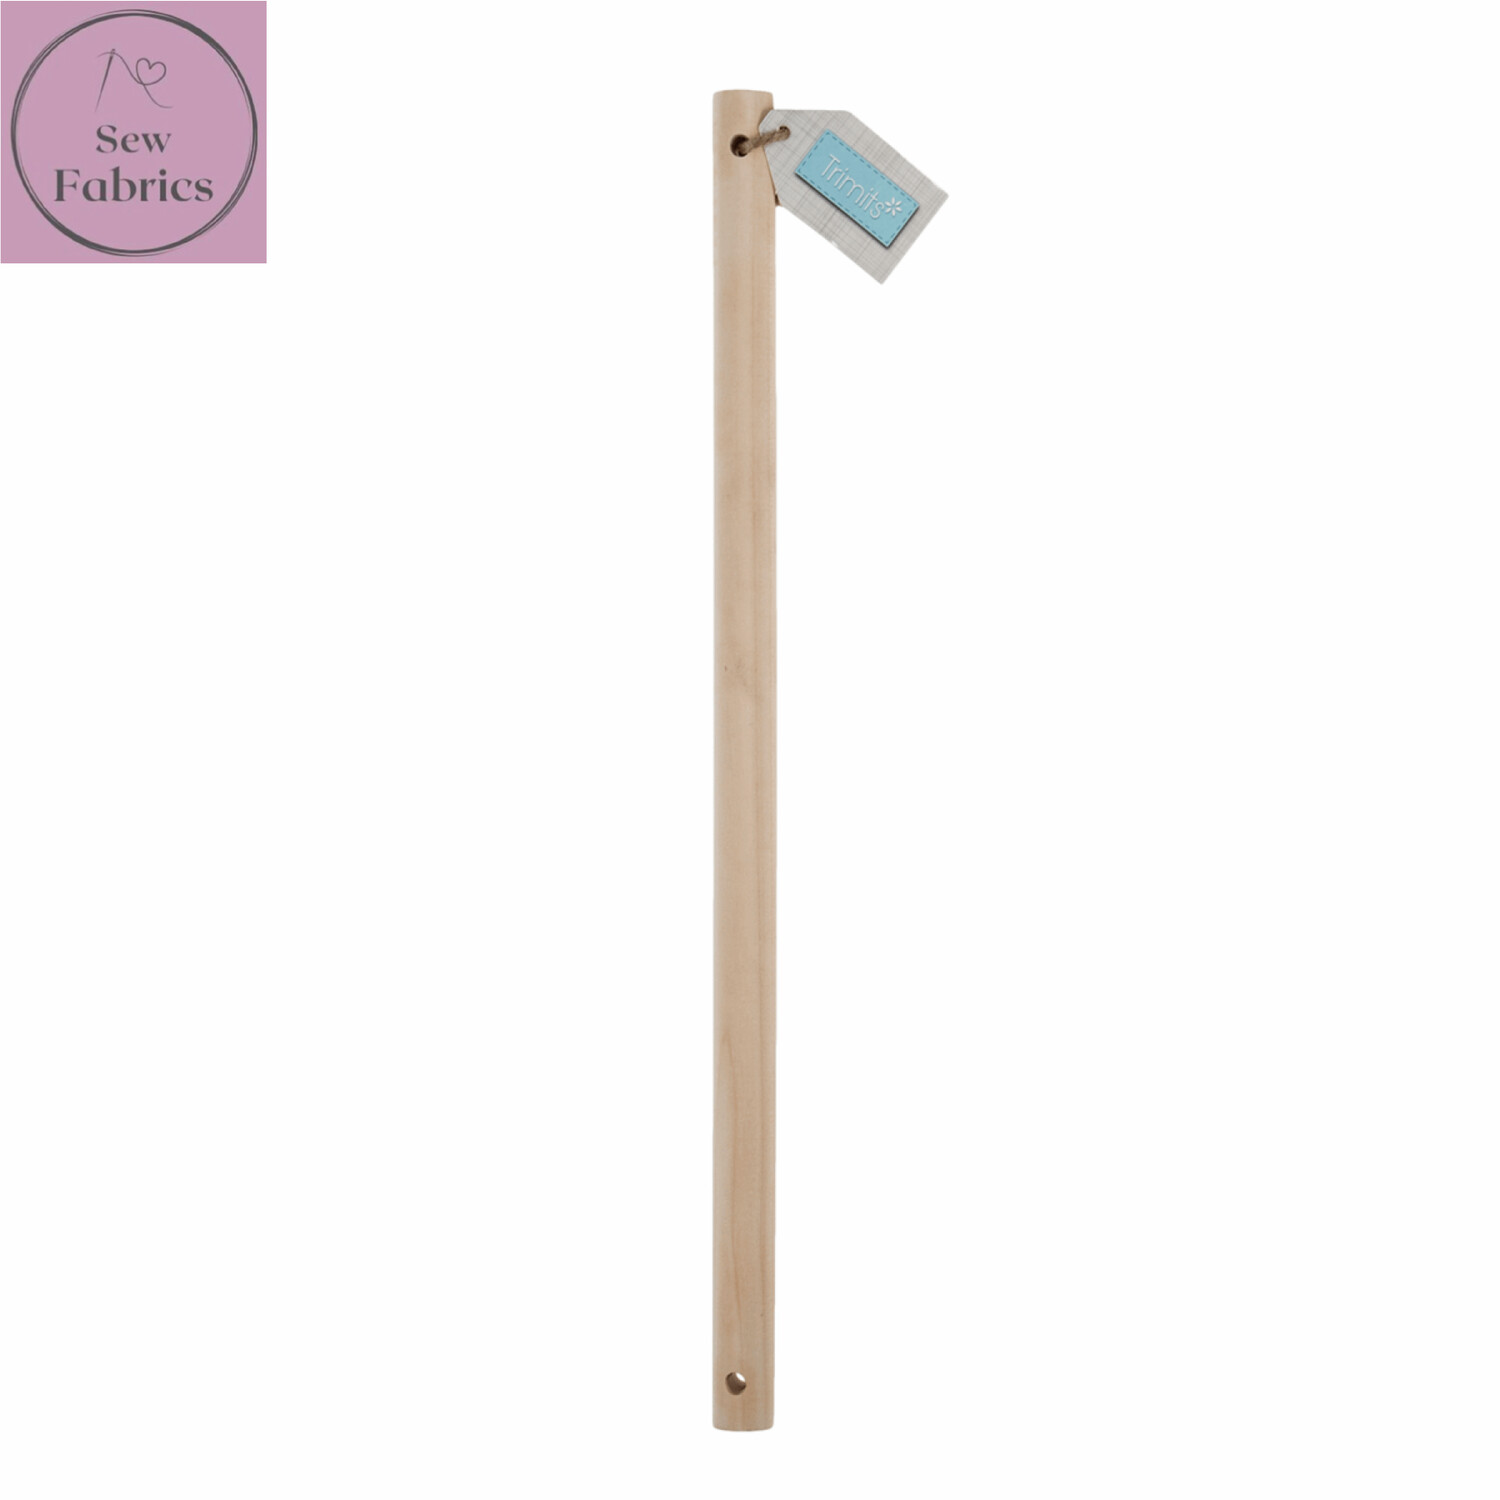 Birch Wooden Dowel 30cm x 15mm for Macrame, Wall hanging projects